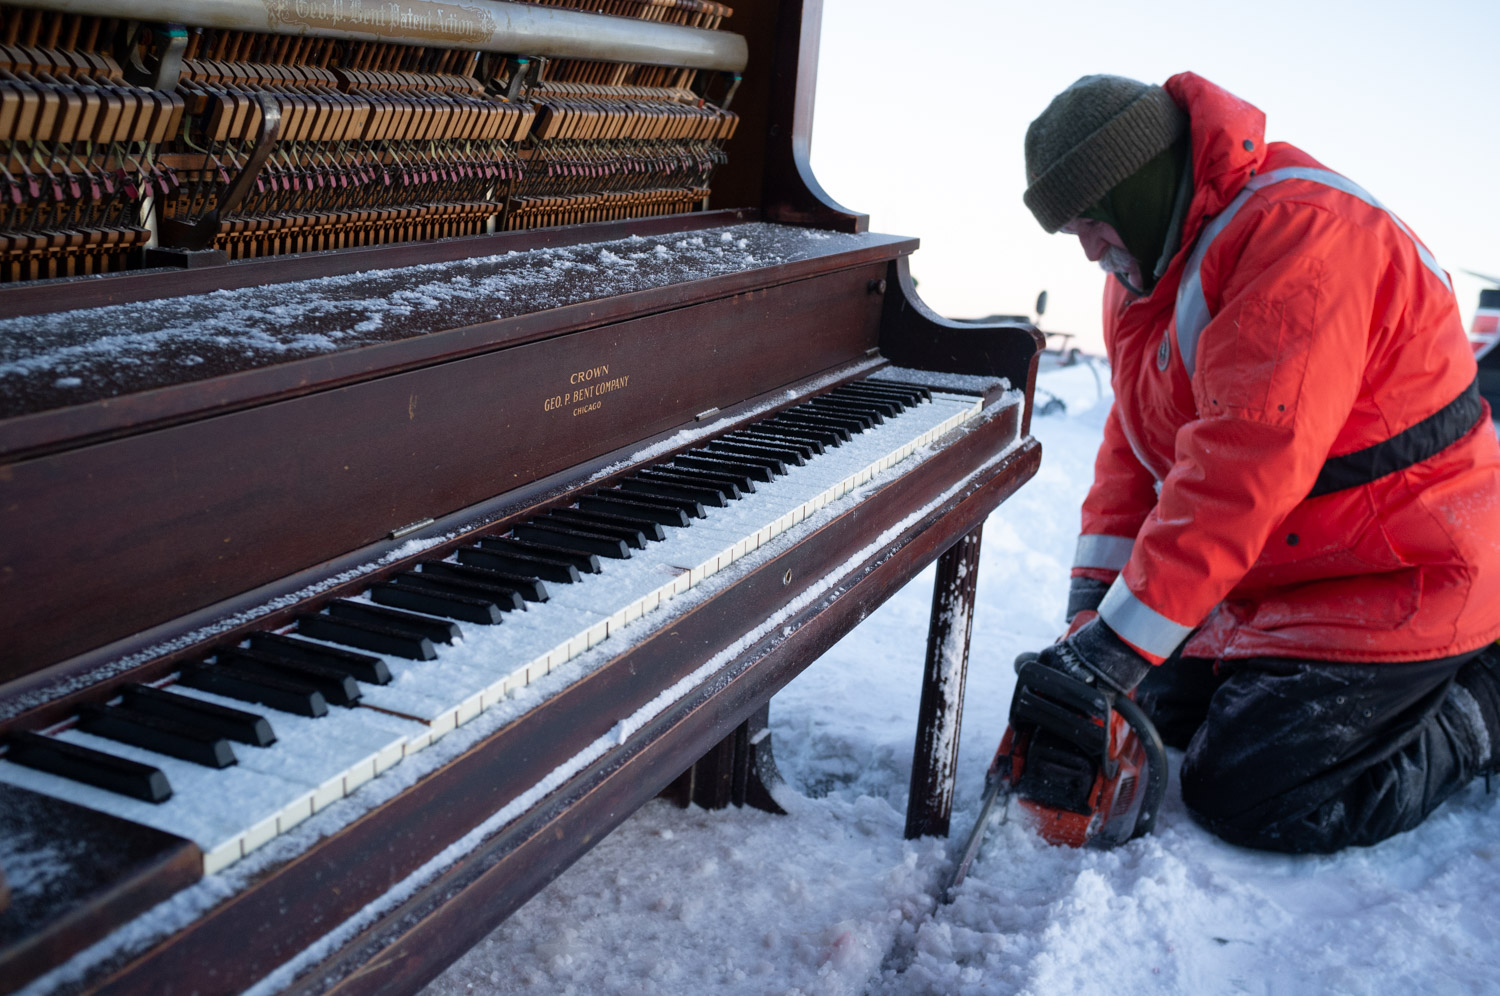 Freezing piano in the ice for Northern Sights 360 vr project.